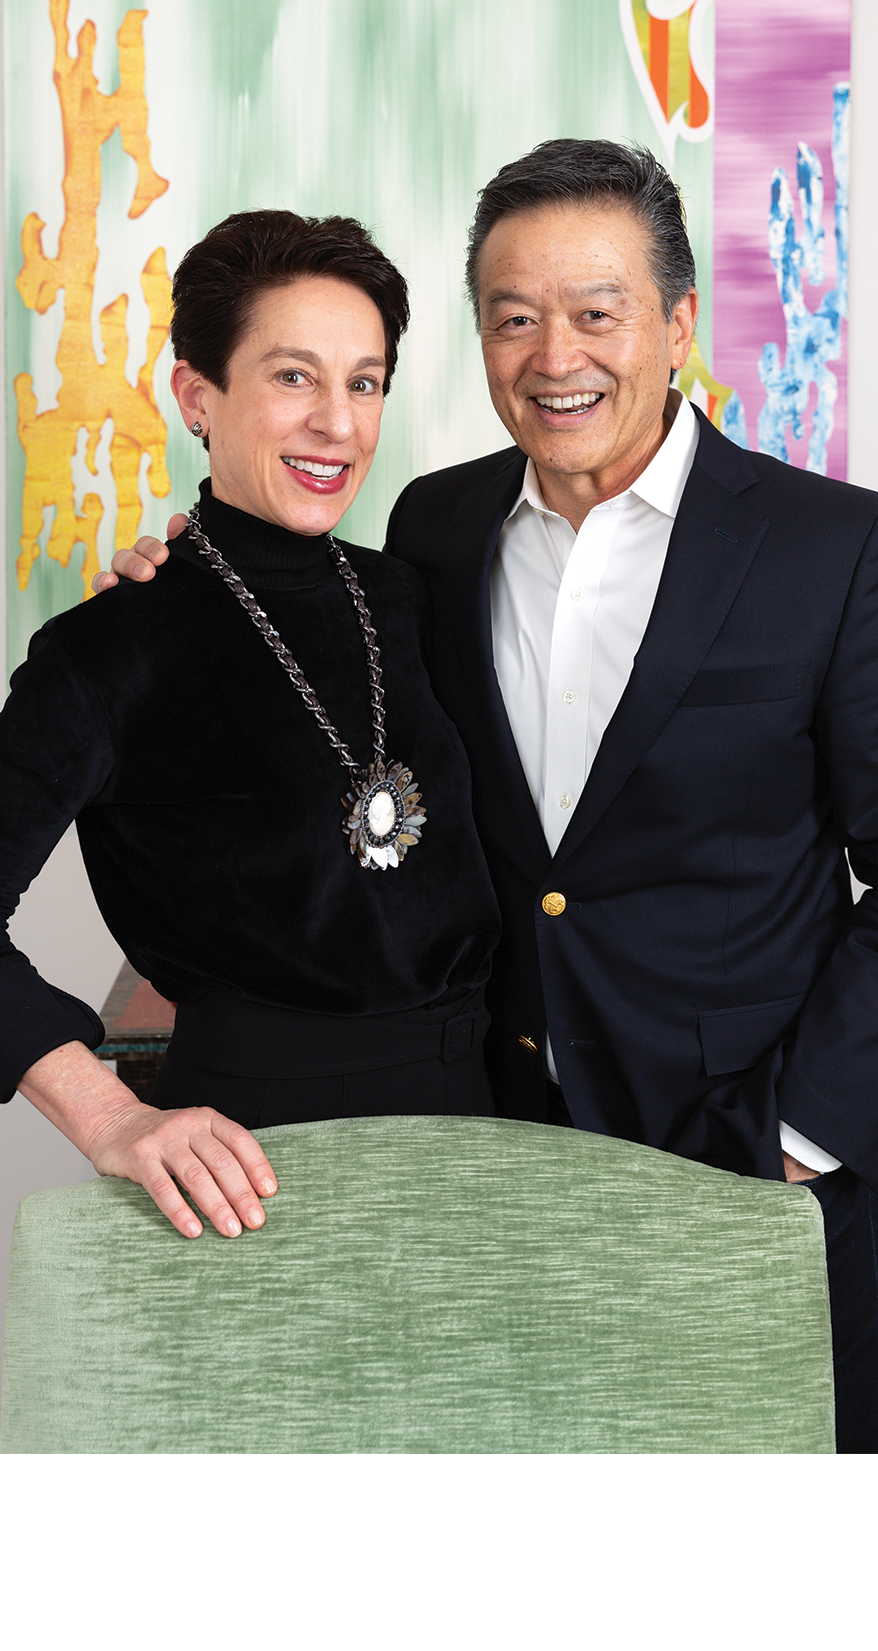 Melinda Wolfe and Ken Inadomi standing next to each other in front of a painting